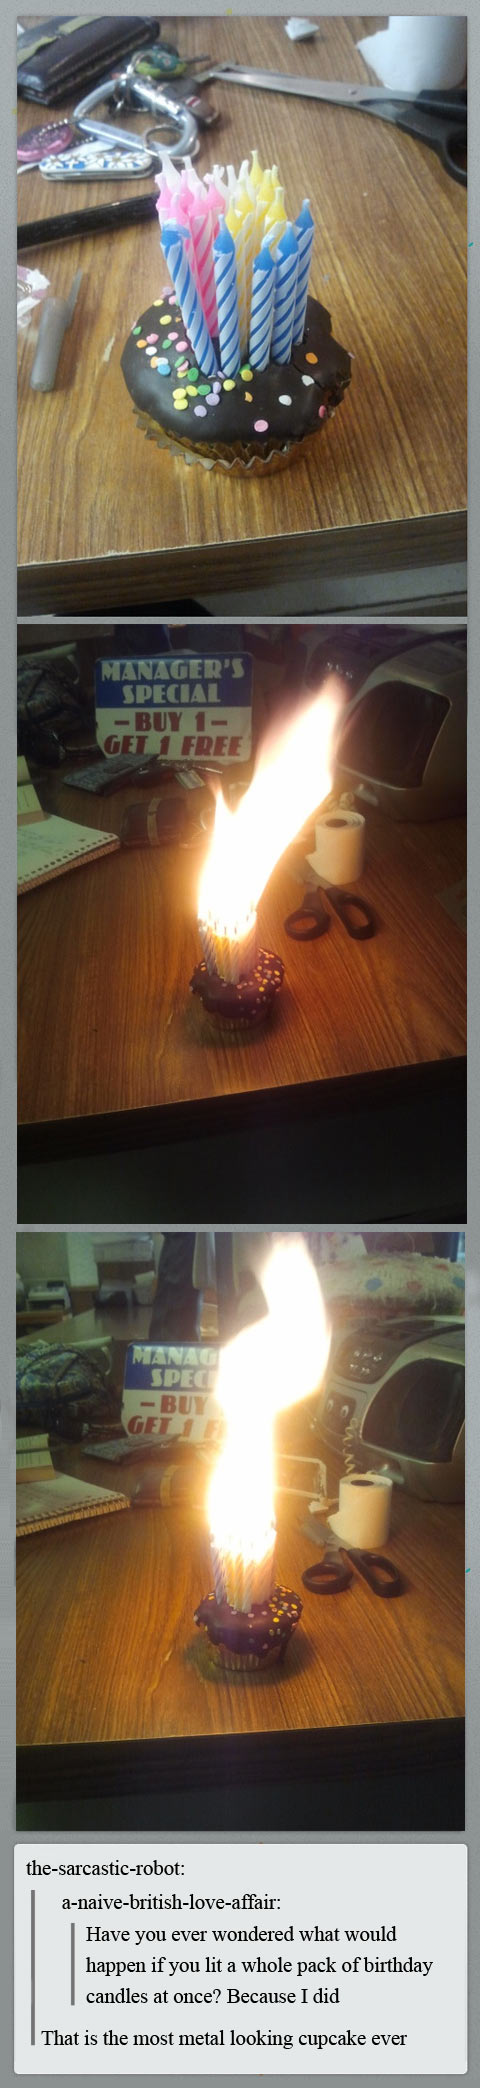 funny-muffin-candles-birthday-fire